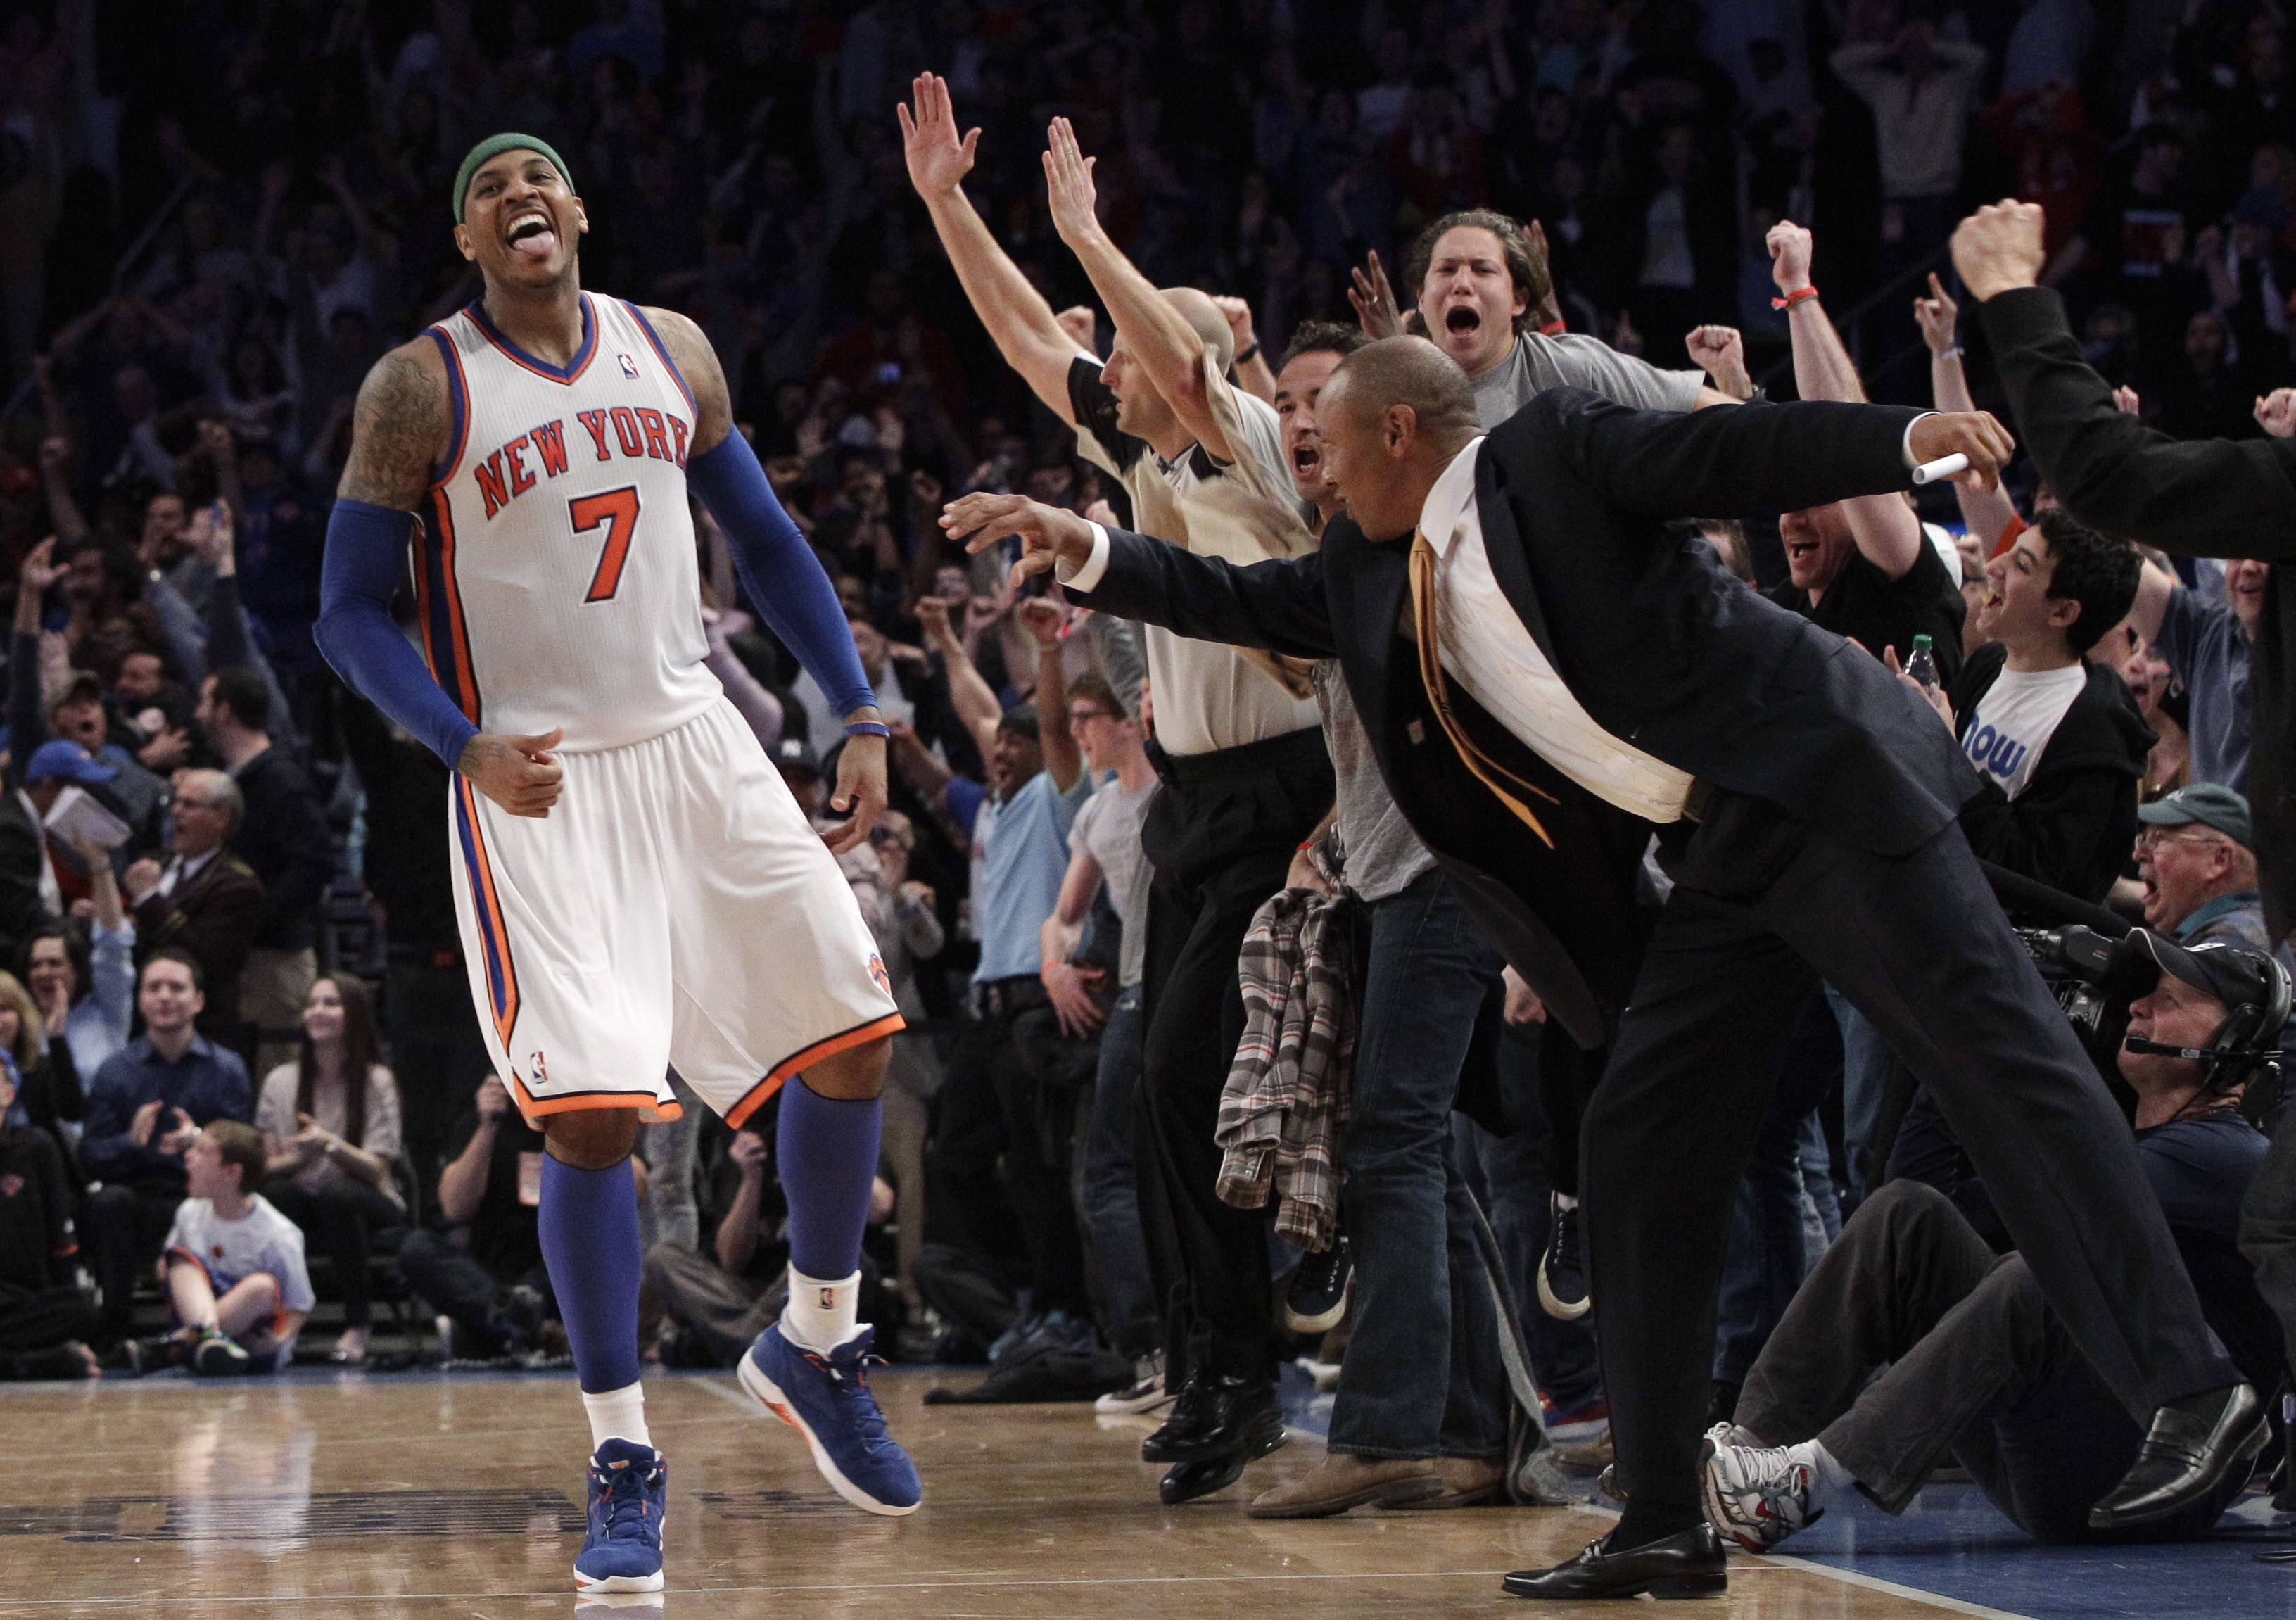 New York Knicks forward Carmelo Anthony and fans react after Anthony hit a 3-pointer in the closing seconds of overtime Sunday against the Bulls.